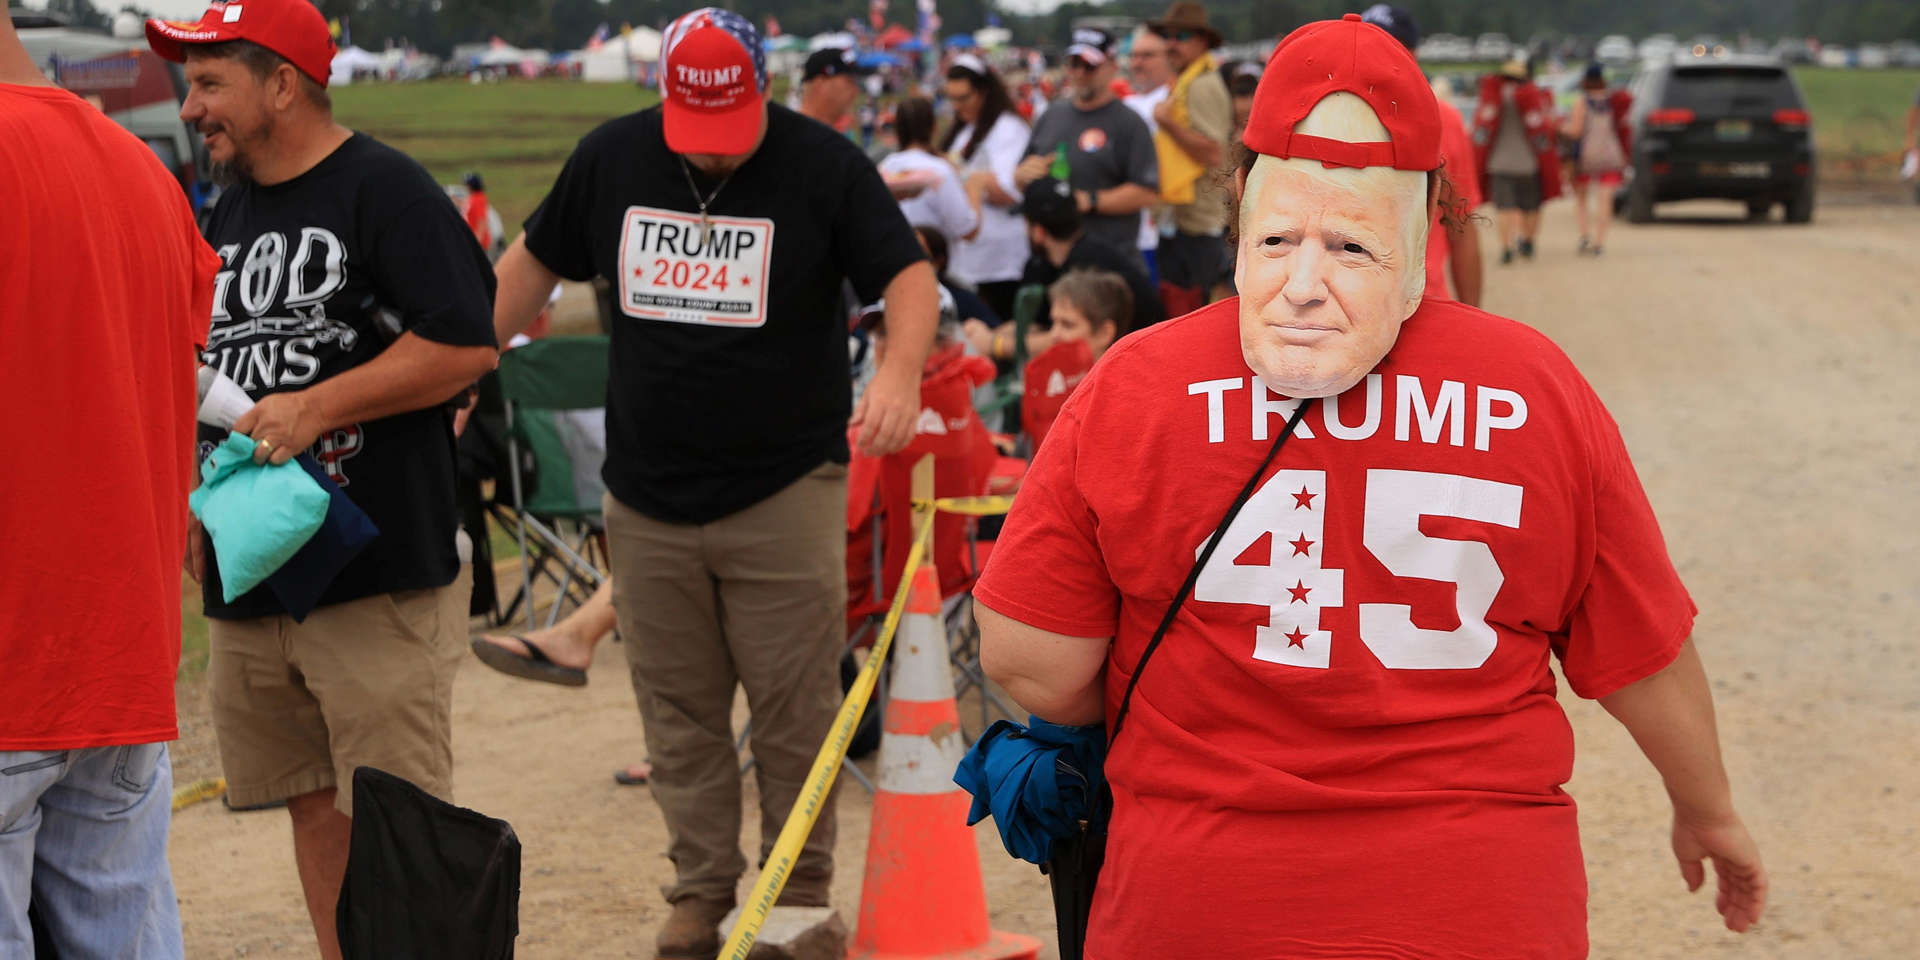 An Attendee At The Alabama Trump Rally Said She Wanted Trump to Reveal That He Was Still President, Echoing The Conspiracy Theory That Grips The Republican Party AANB68T